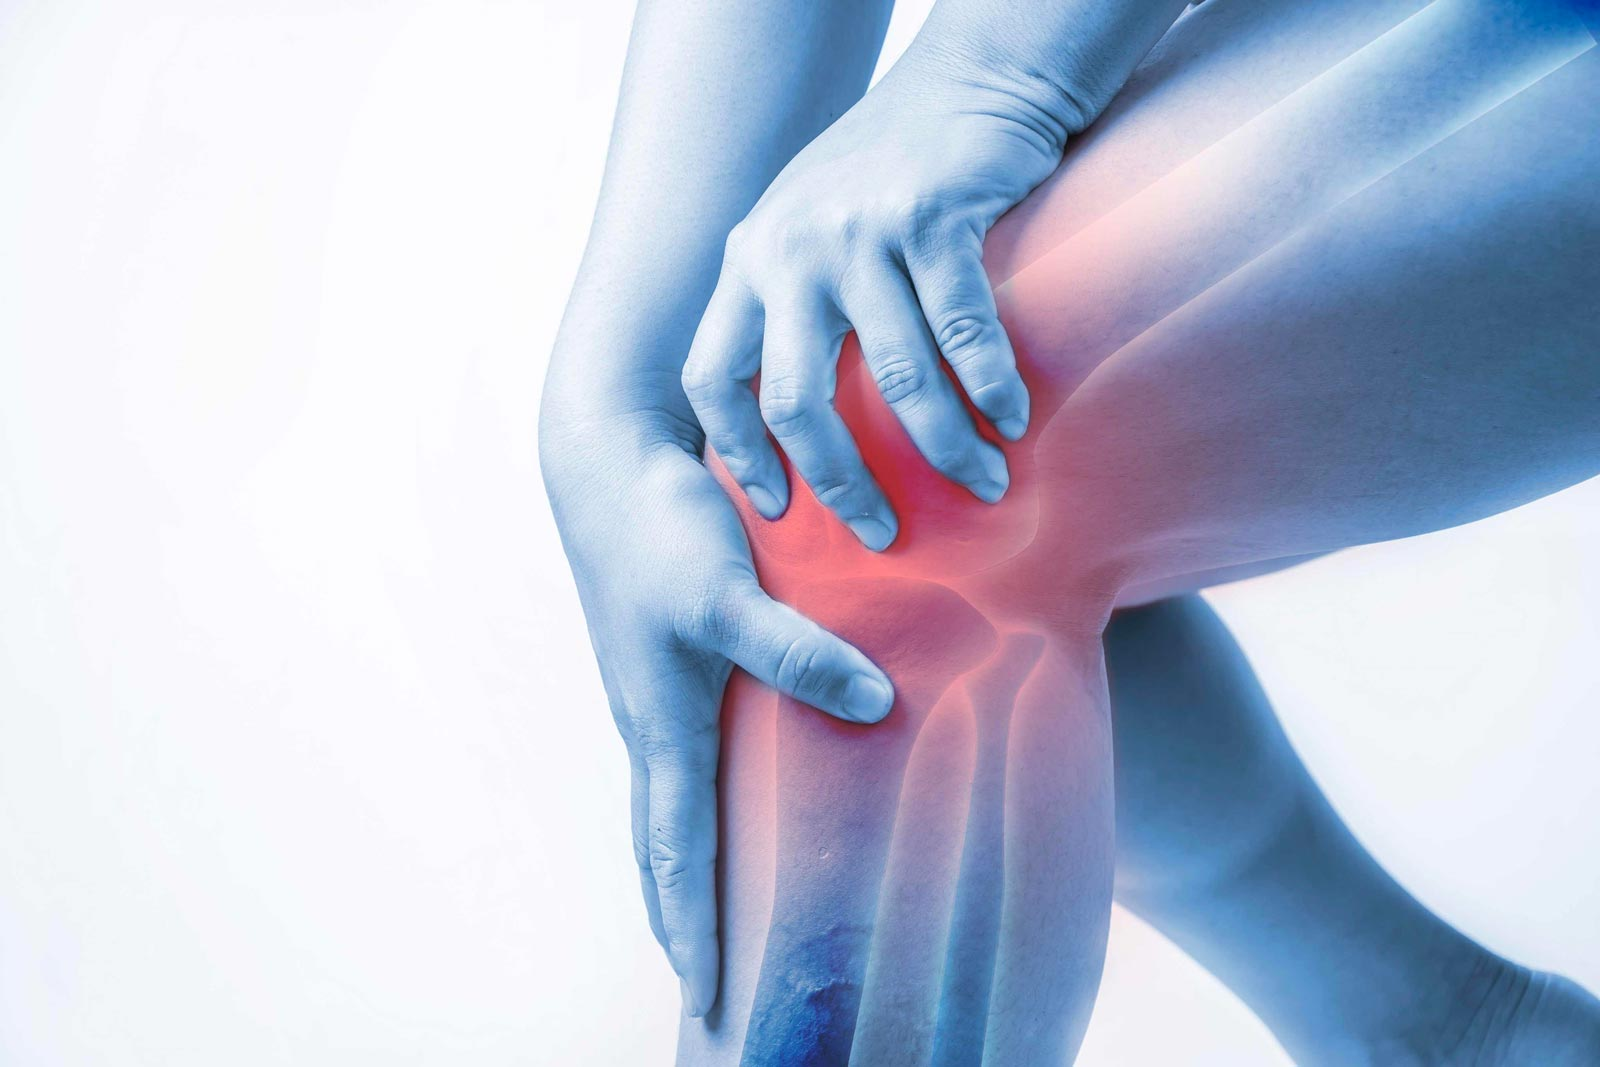 Naturopathic Pain Solutions While Waiting for Hip or Knee Surgery by Dr. Sean Ceaser, N.D.